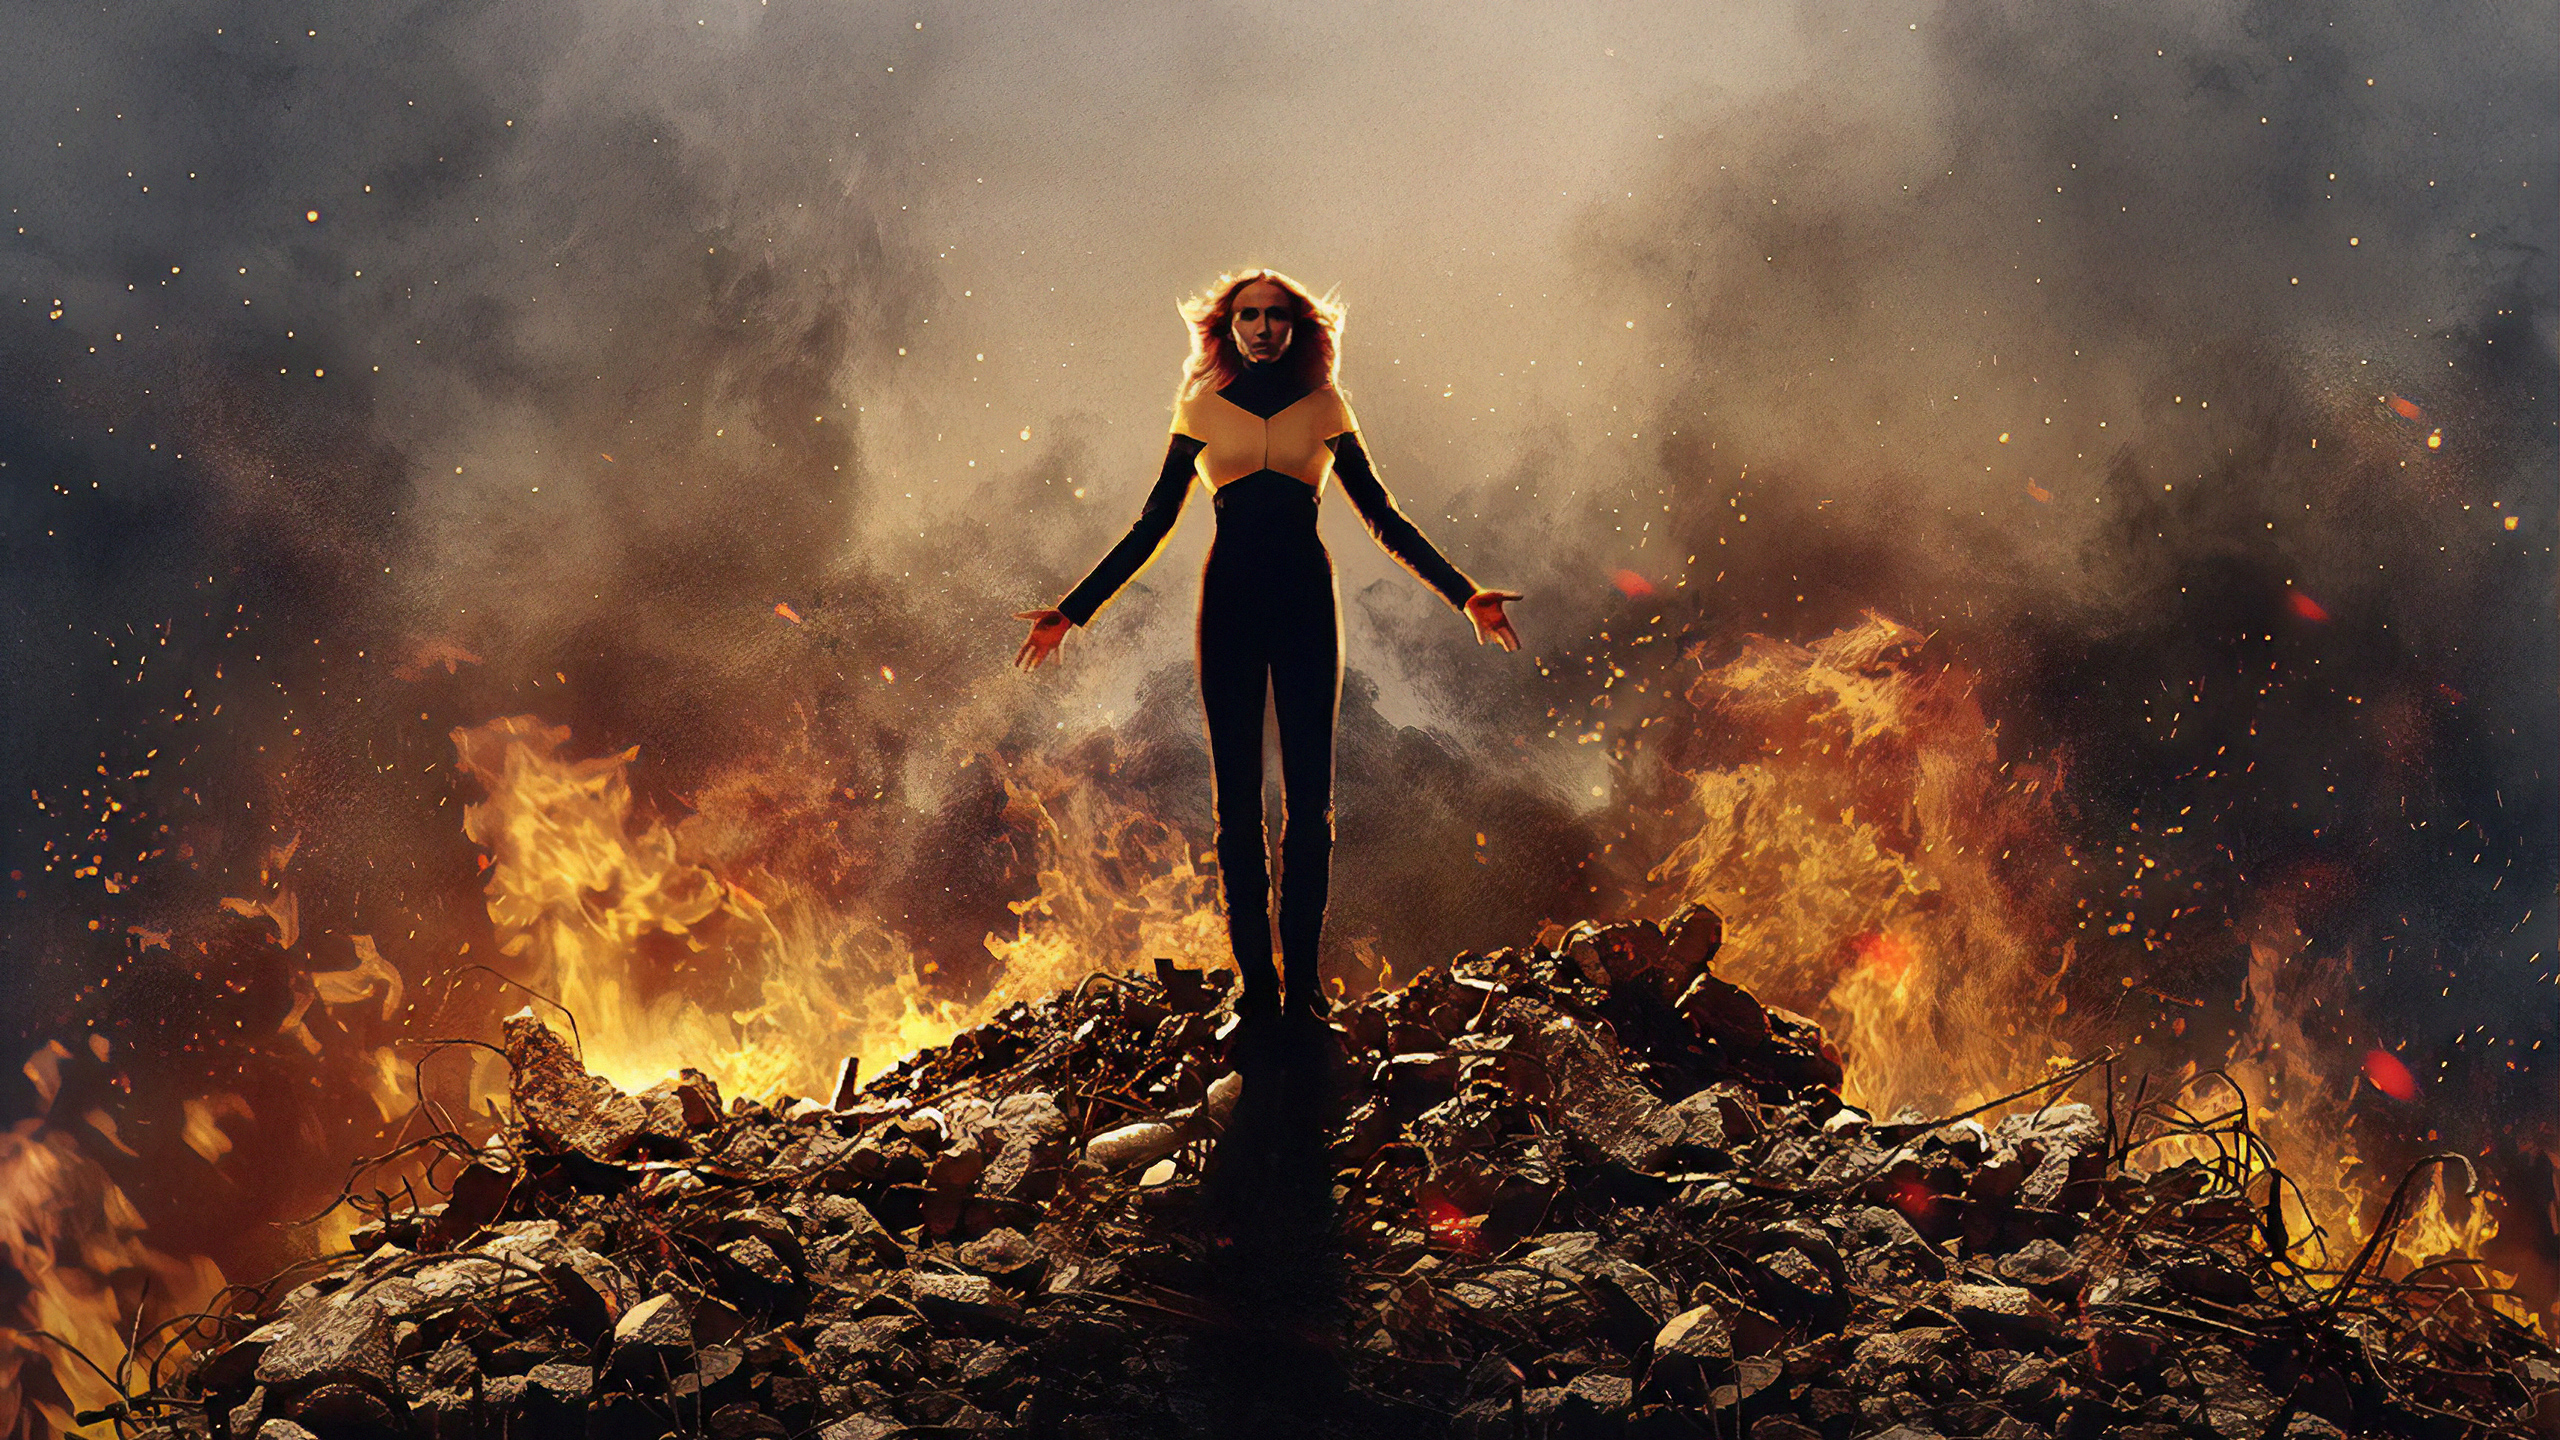 X Men Dark Phoenix 2019 Hd Movies 4k Wallpapers Images Backgrounds Photos And Pictures